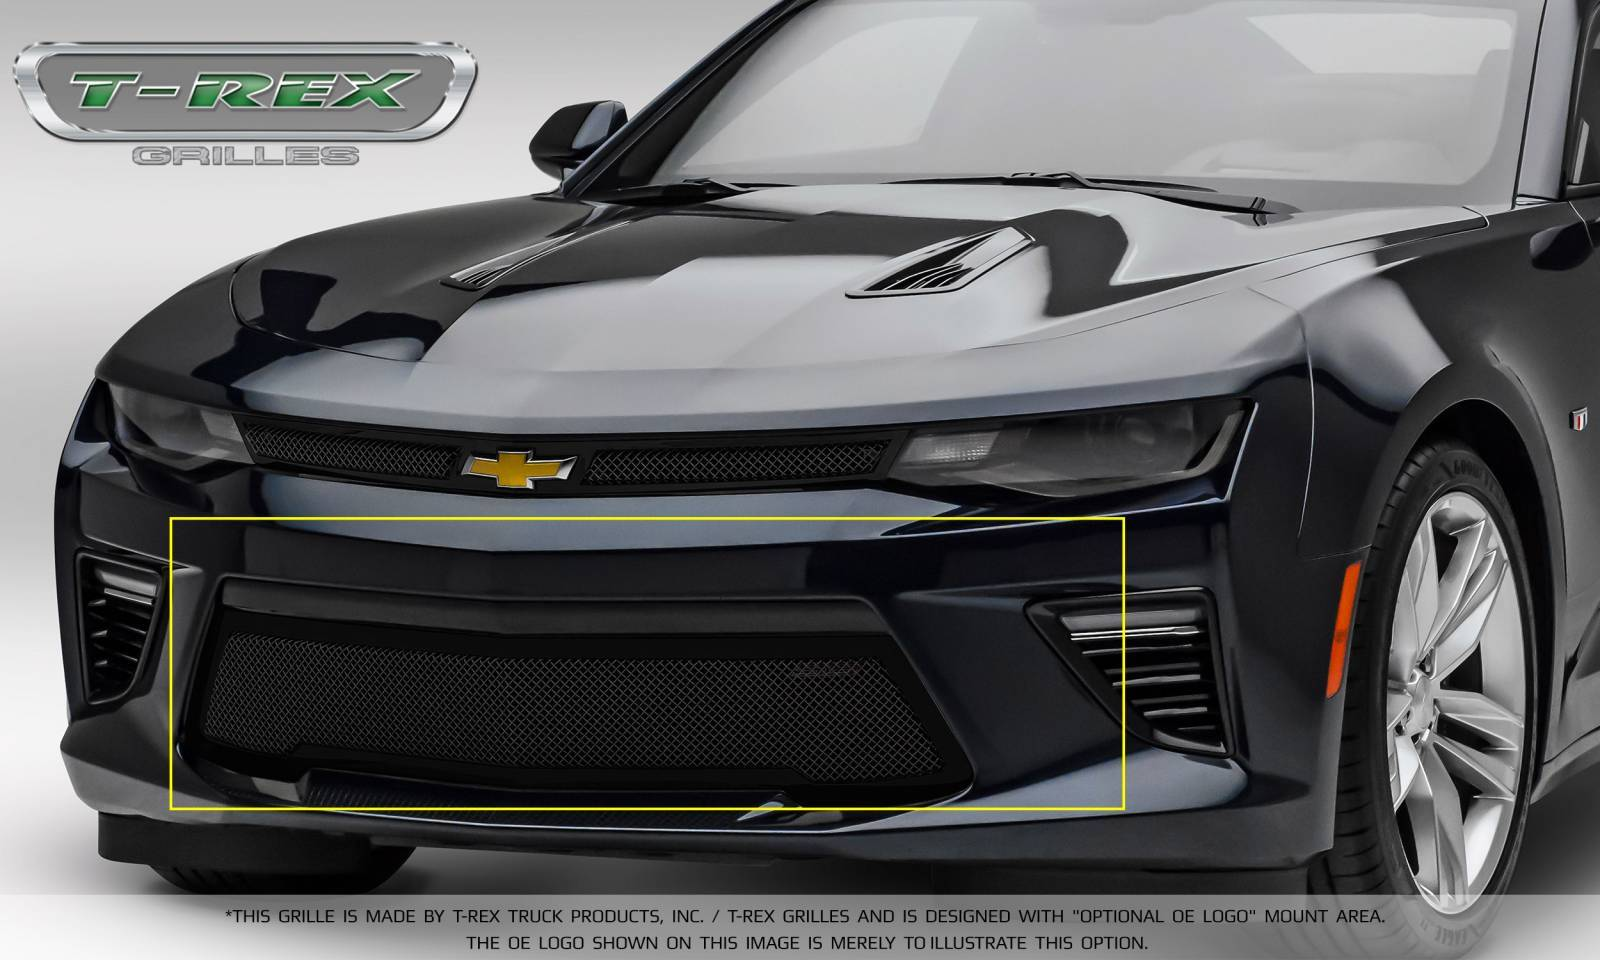 T-REX Chevrolet Camaro V6 - Upper Class -Bumper Grille Overlay with Black Powder coat Finish - Pt # 52035